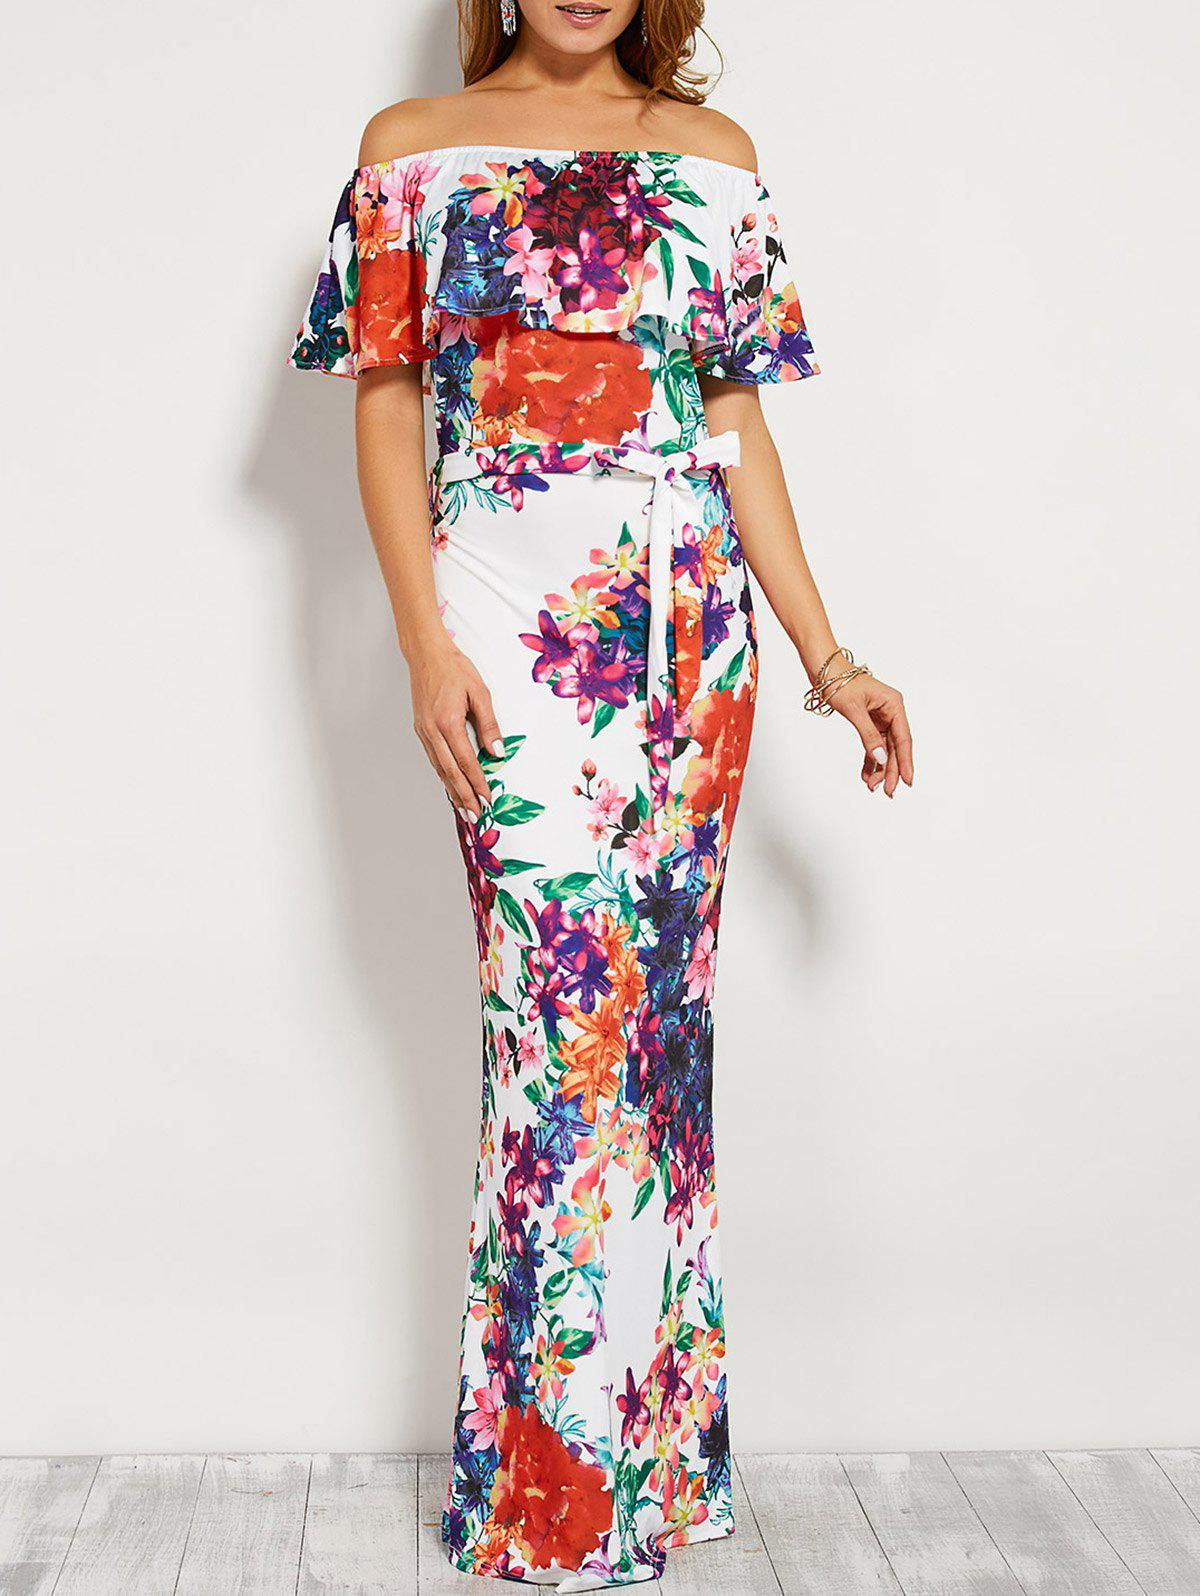 Floral Flounce Off The Shoulder Long Maxi Dress sweet off the shoulder floral dress for women